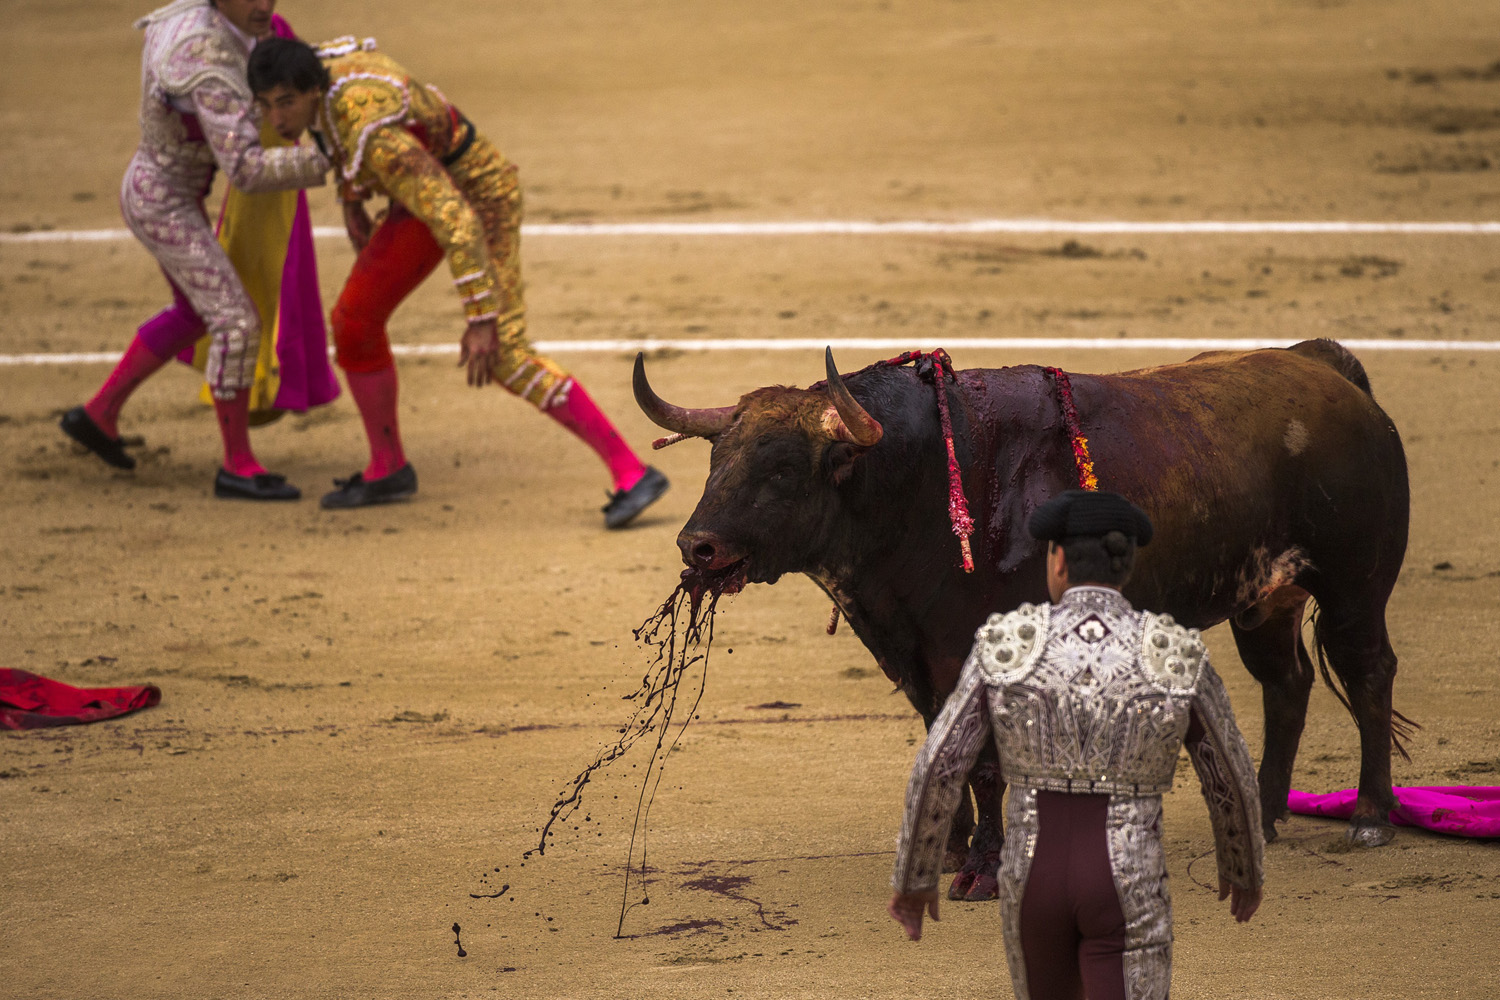 May 20, 2014. Spanish bullfighter Jimenez Fortes, top second left, kills a Los Chospes ranch fighting bull after being tossed by the bull during a bullfight at Las Ventas bullring in Madrid, Spain.